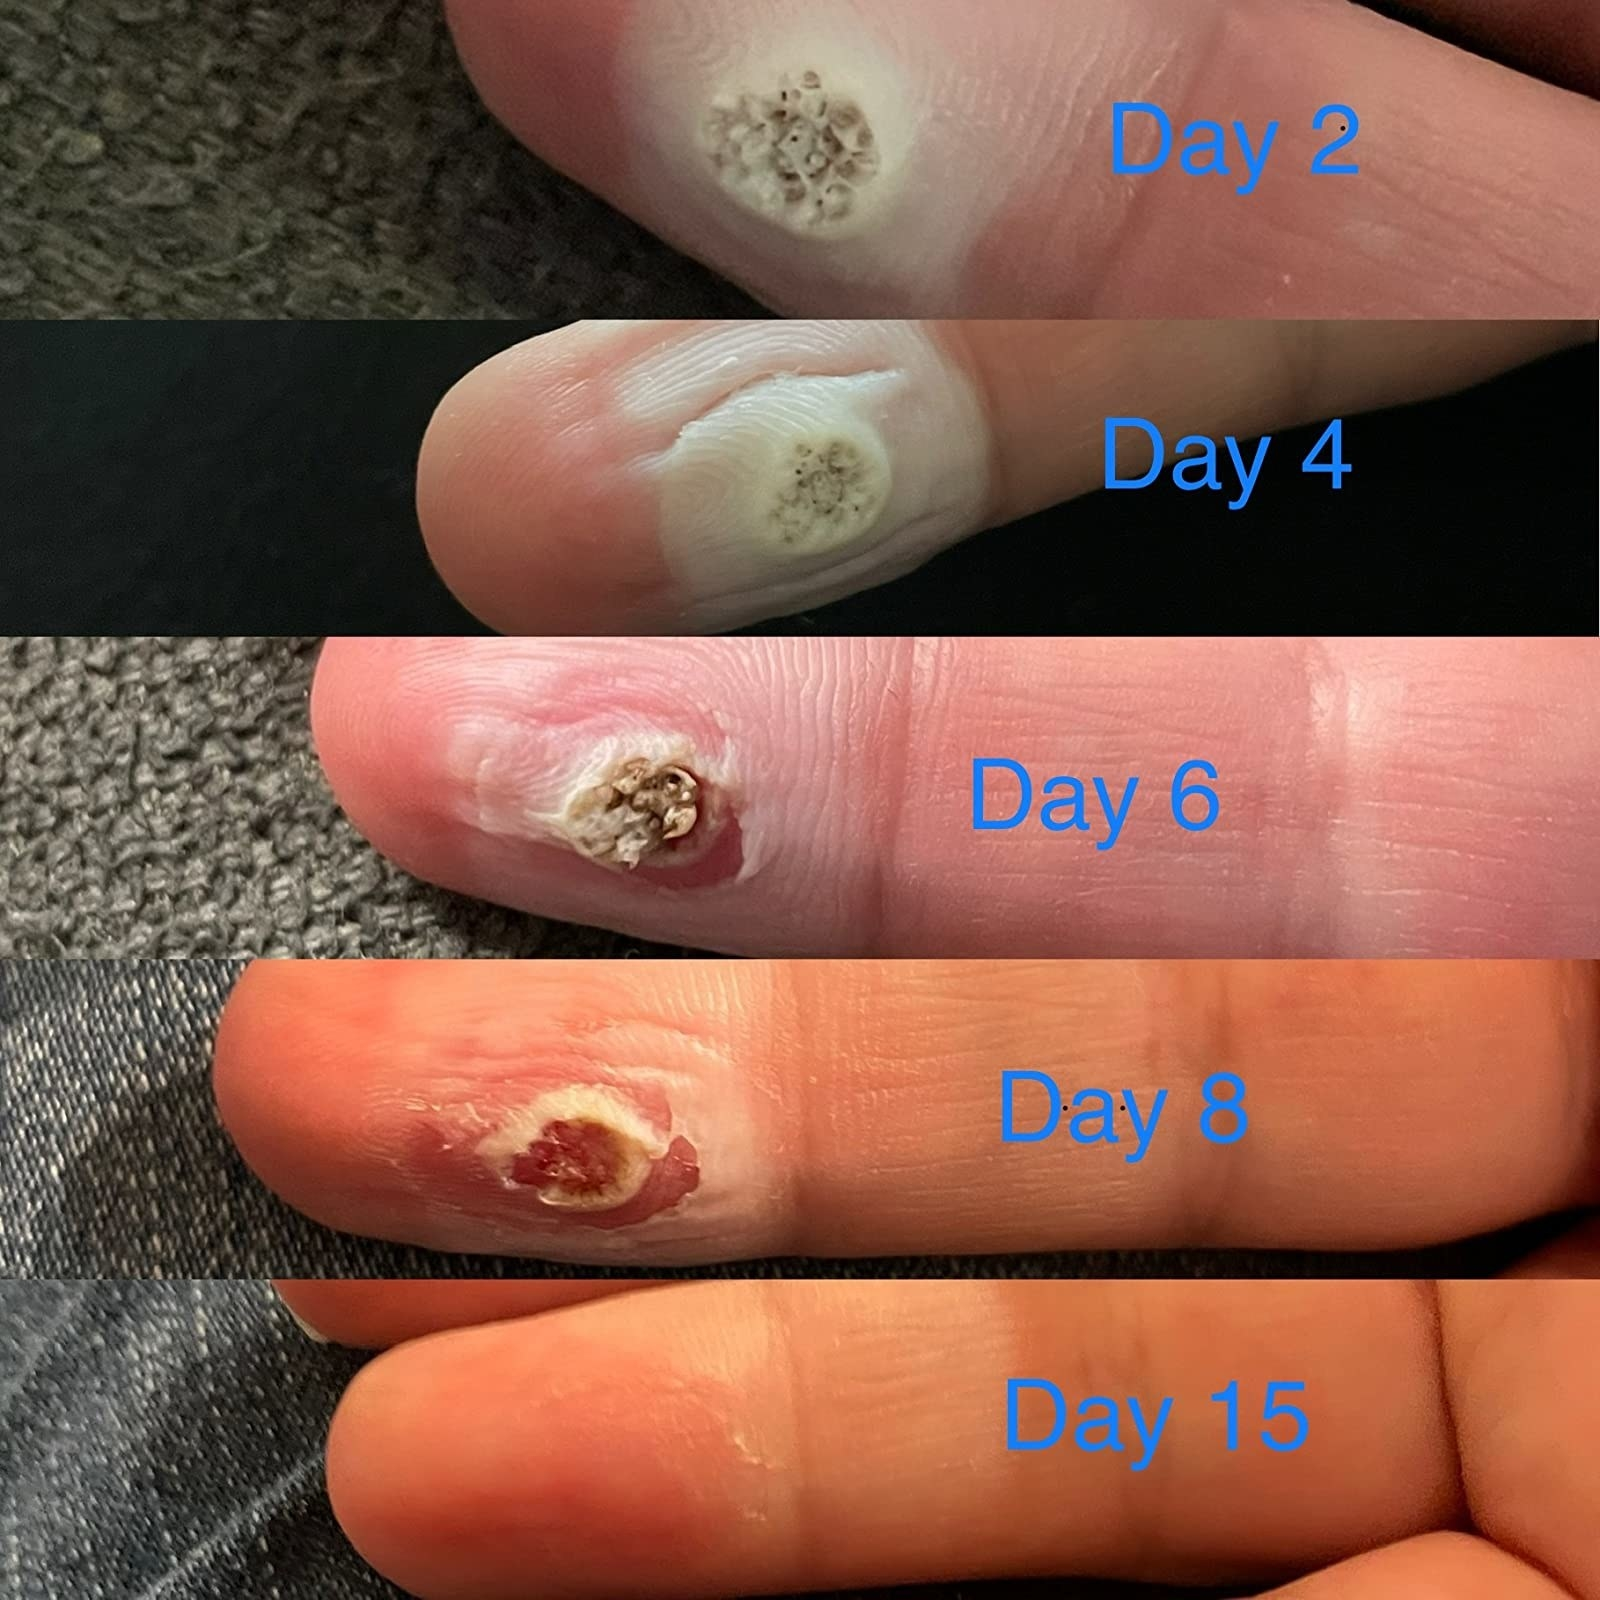 reviewer showing their wart slowly going away over 15 days of using Compound W